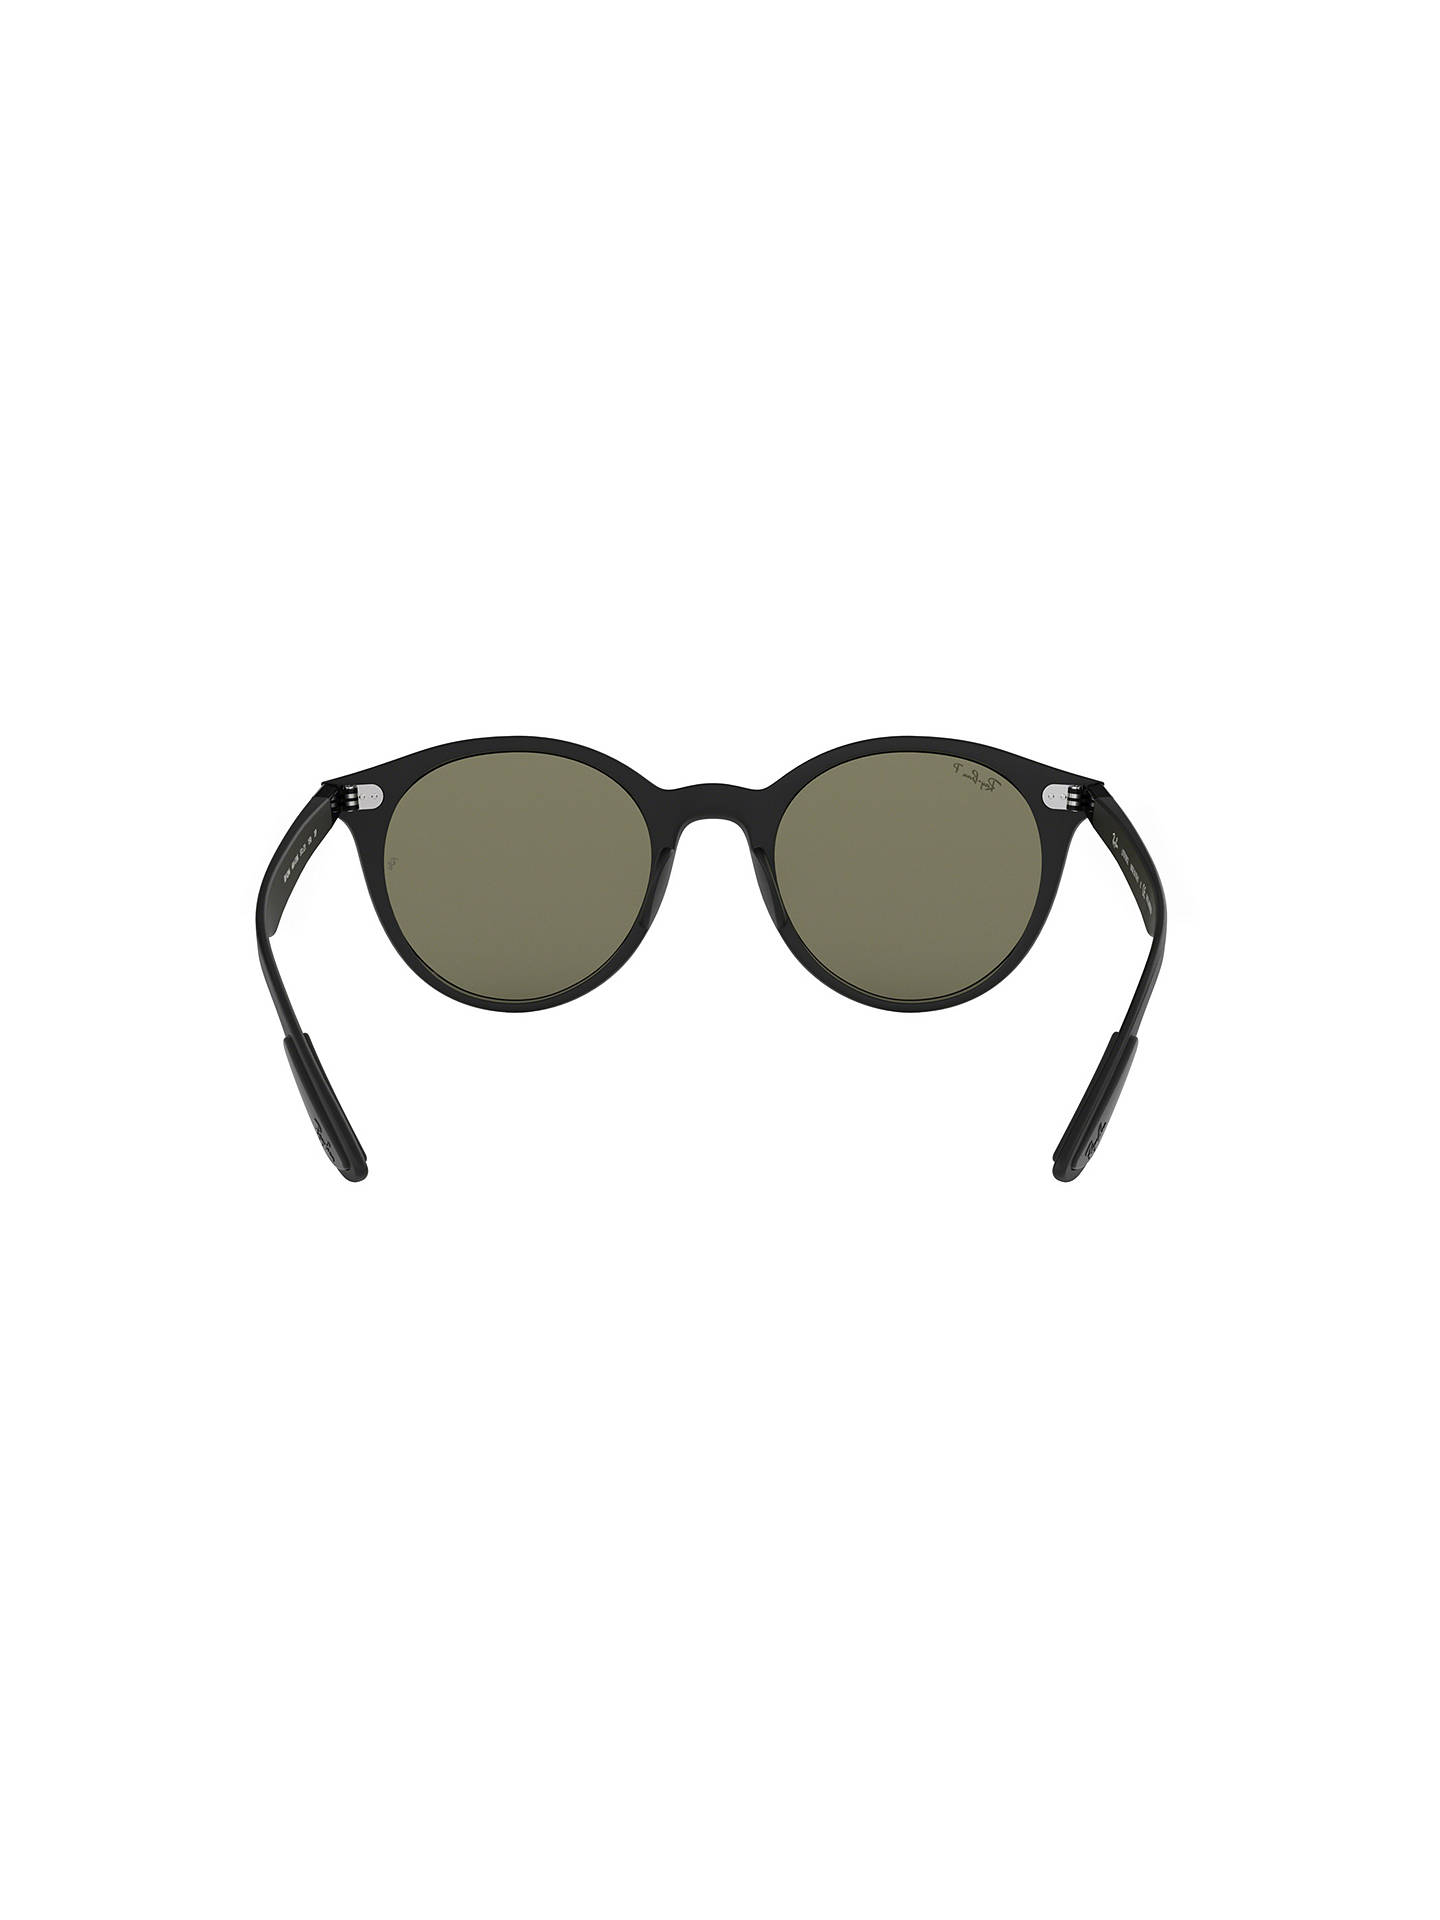 Buy Ray-Ban RB4296 Unisex Polarised Oval Sunglasses, Black/Green Online at johnlewis.com